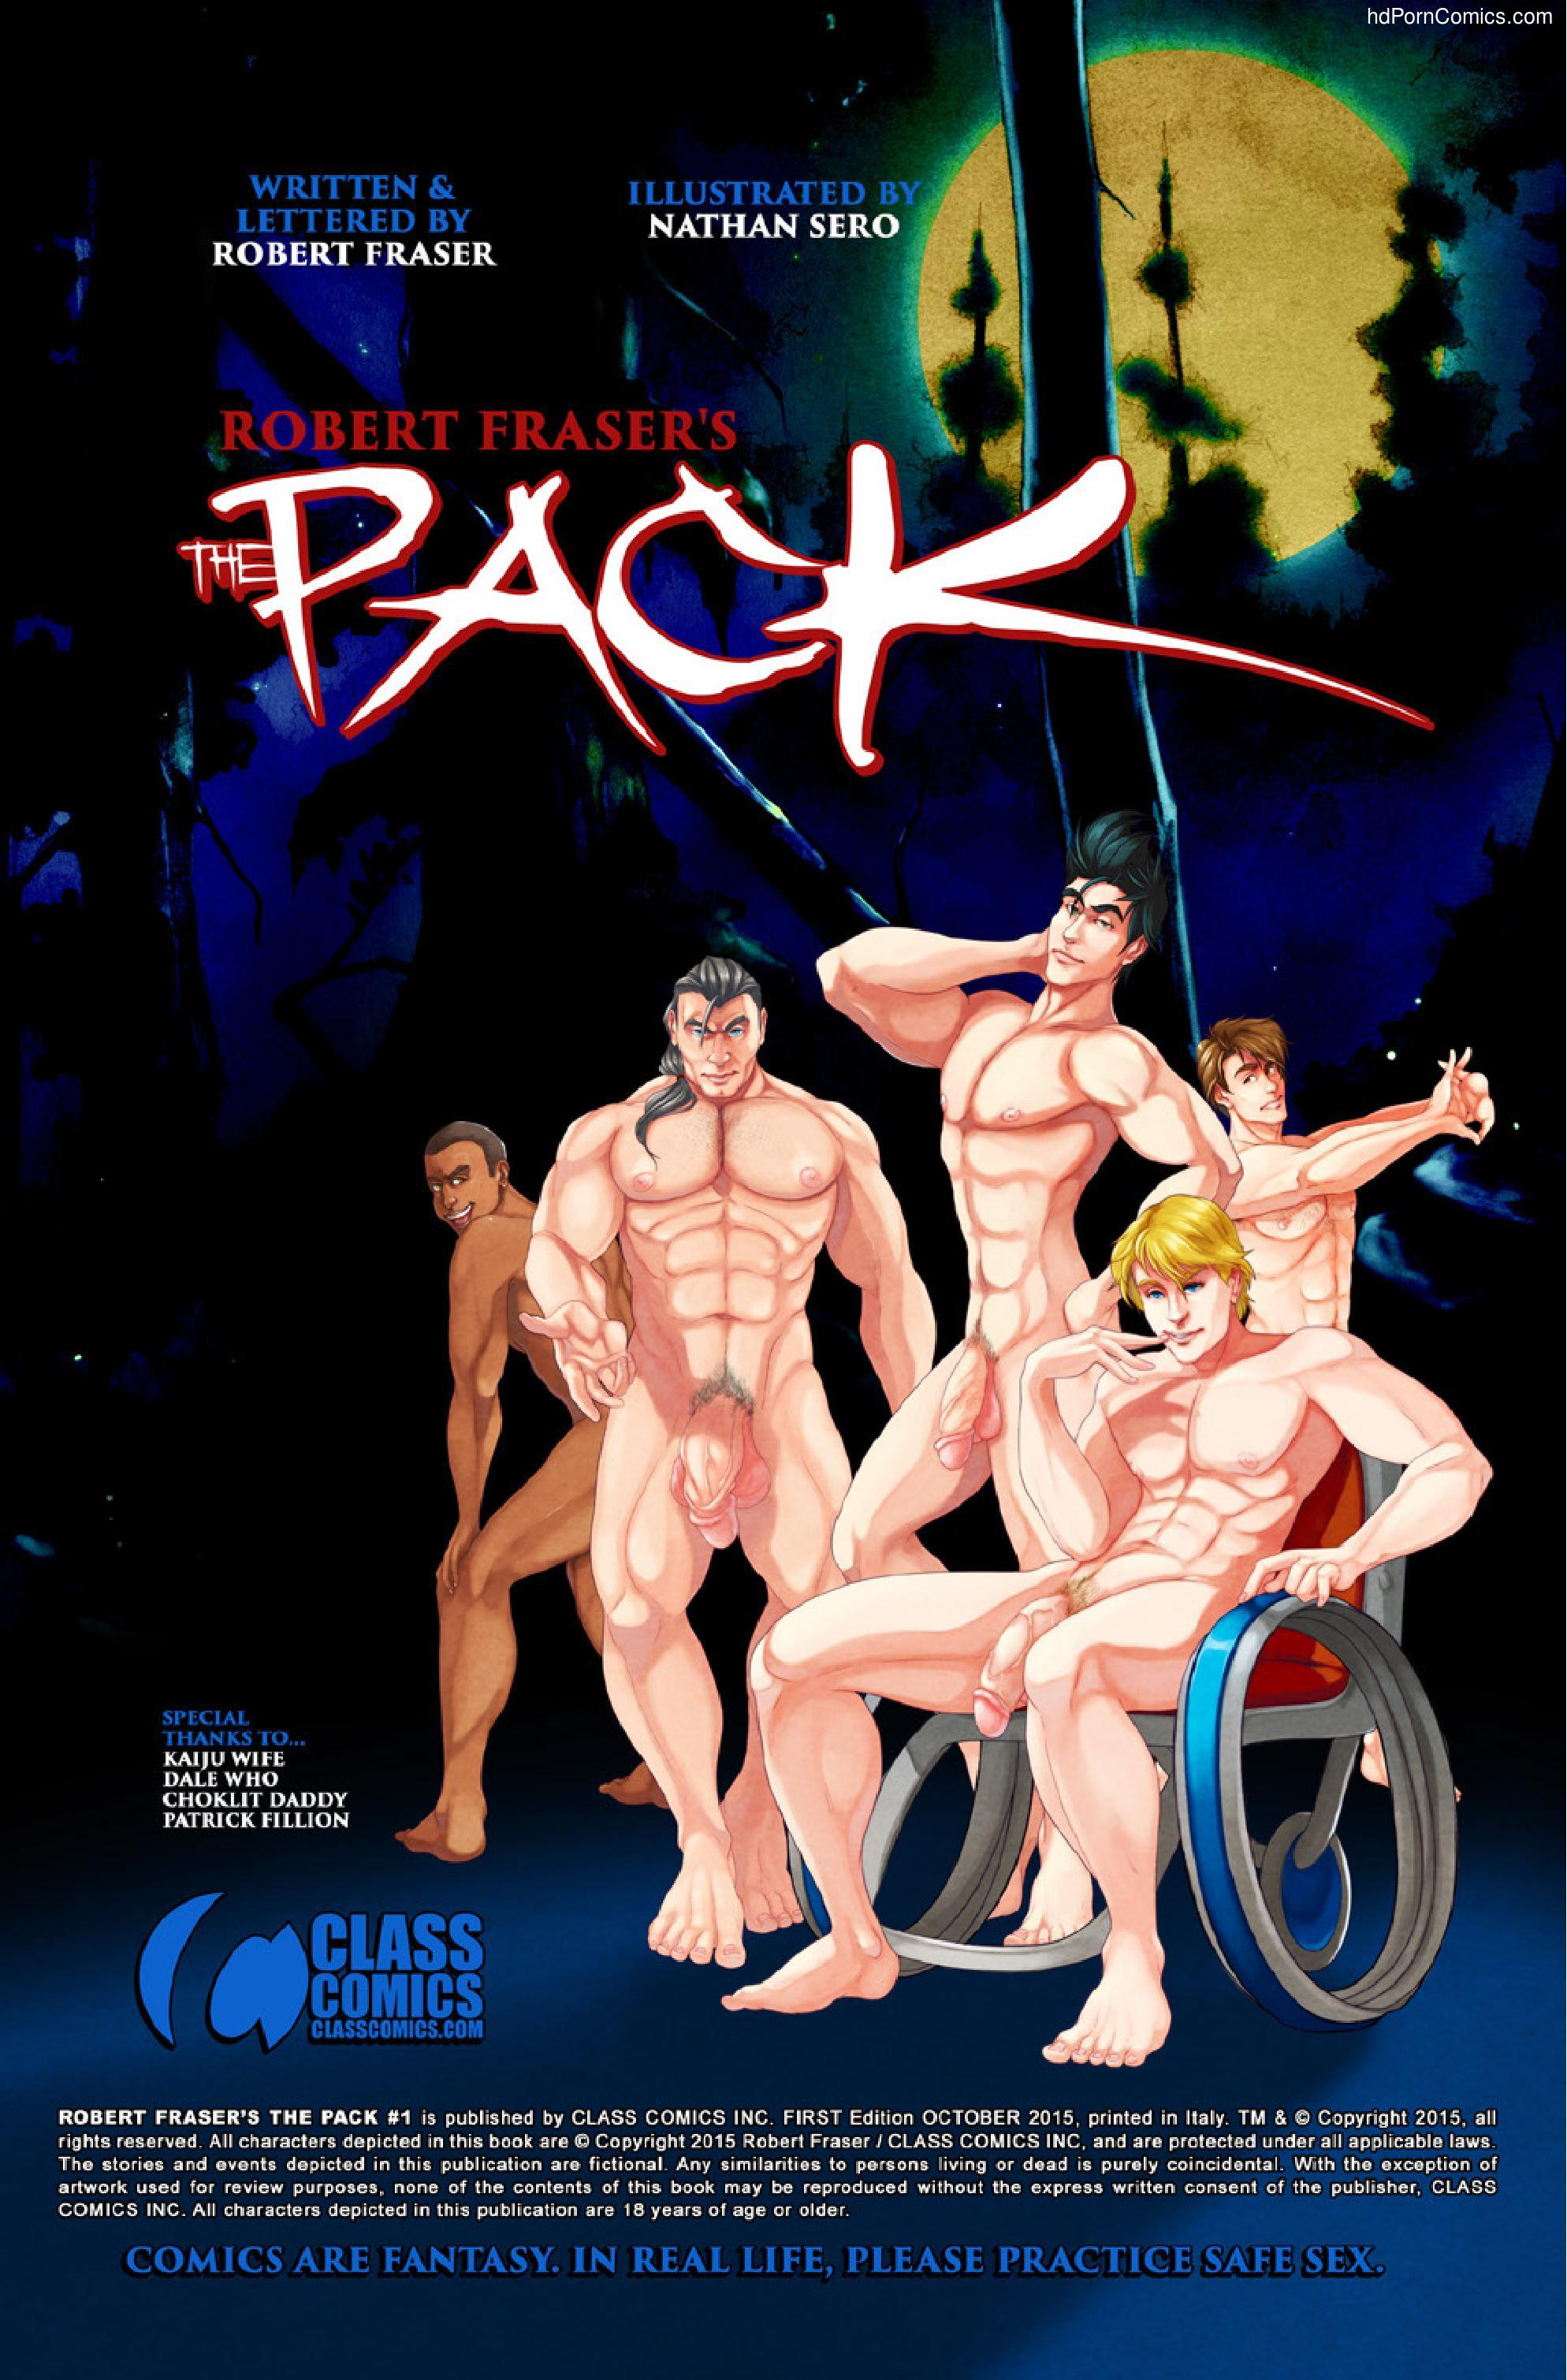 Xxx comics-The pack 12 free sex comic